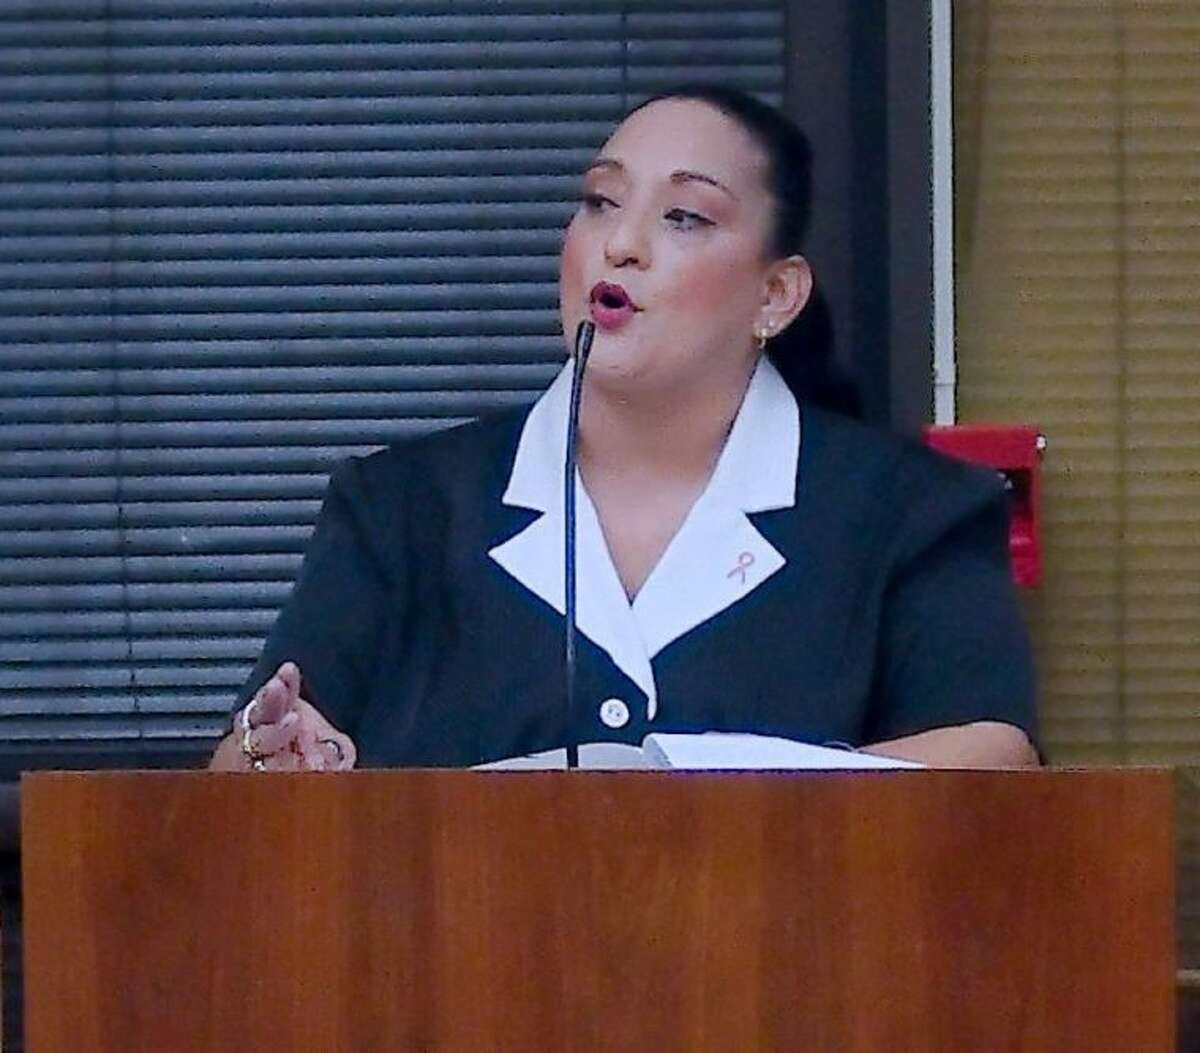 Patricia Gonzales was one of many publc speakers voicing displeasure with a proposal that would bring back to Pasadena two at-large council districts. Council approved it 5-4.